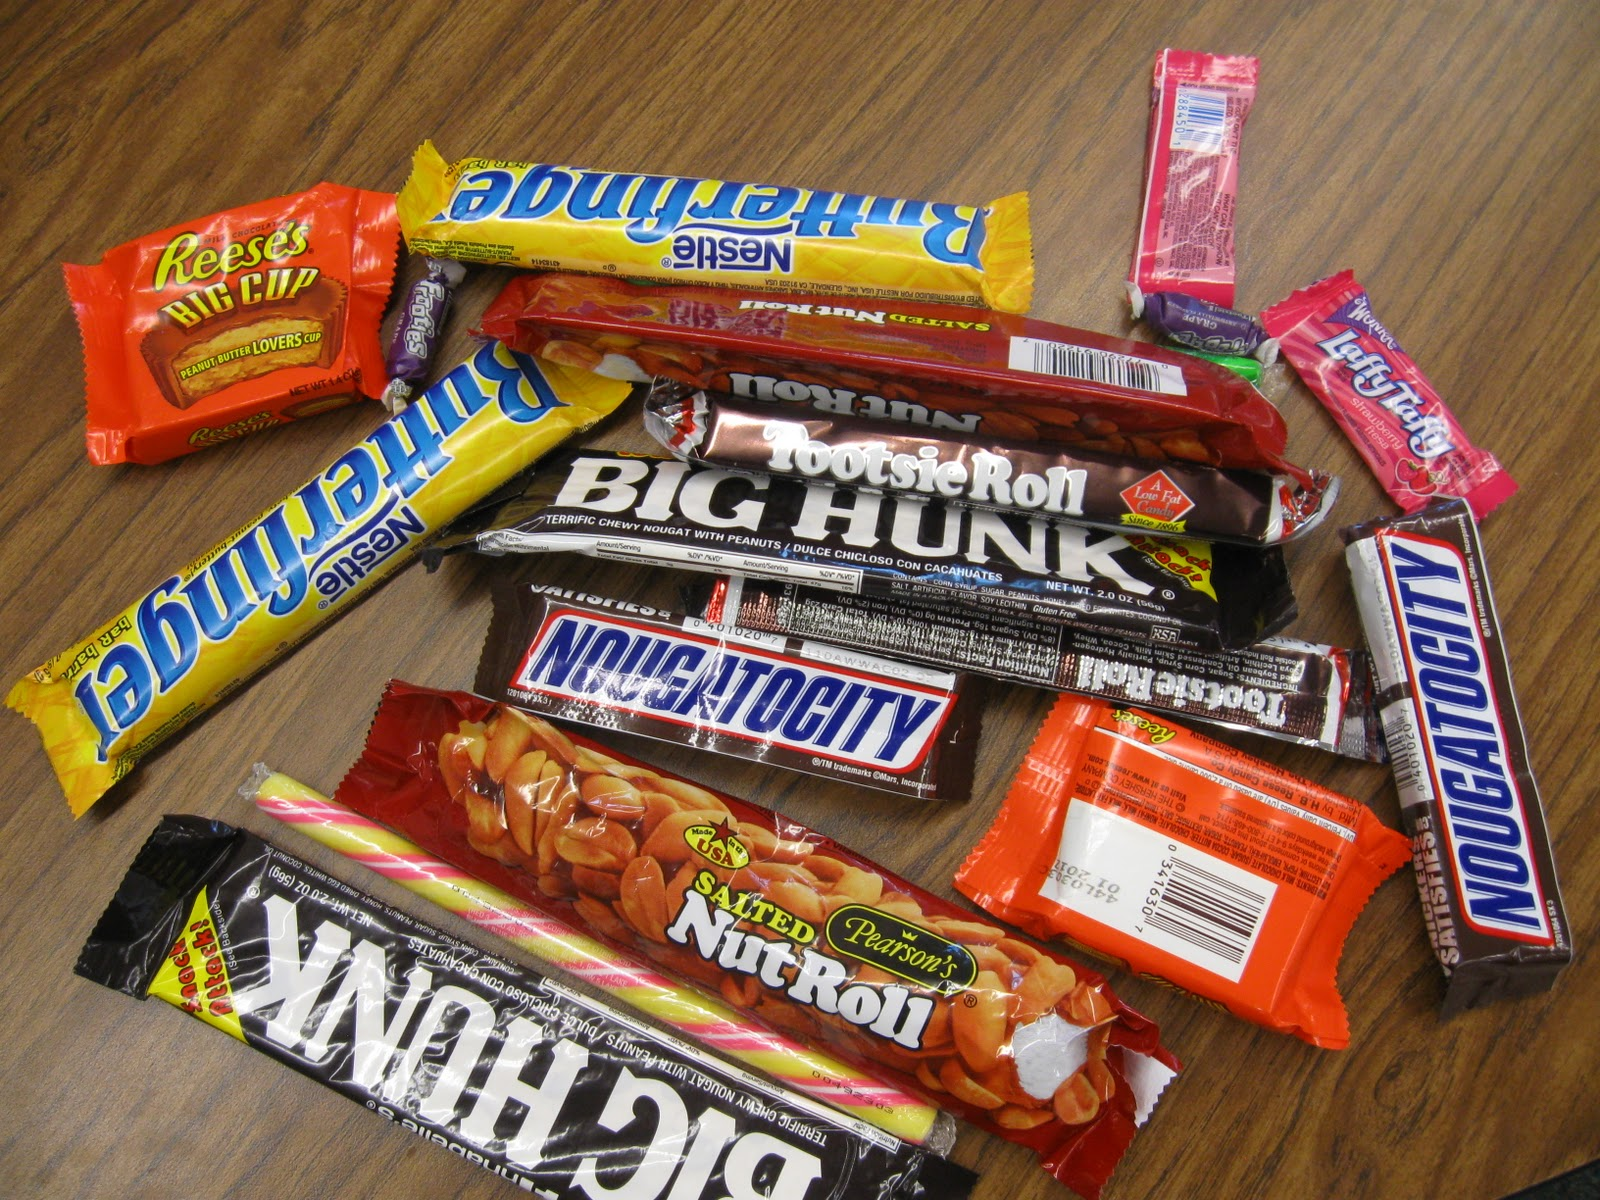 Candy Bars Names